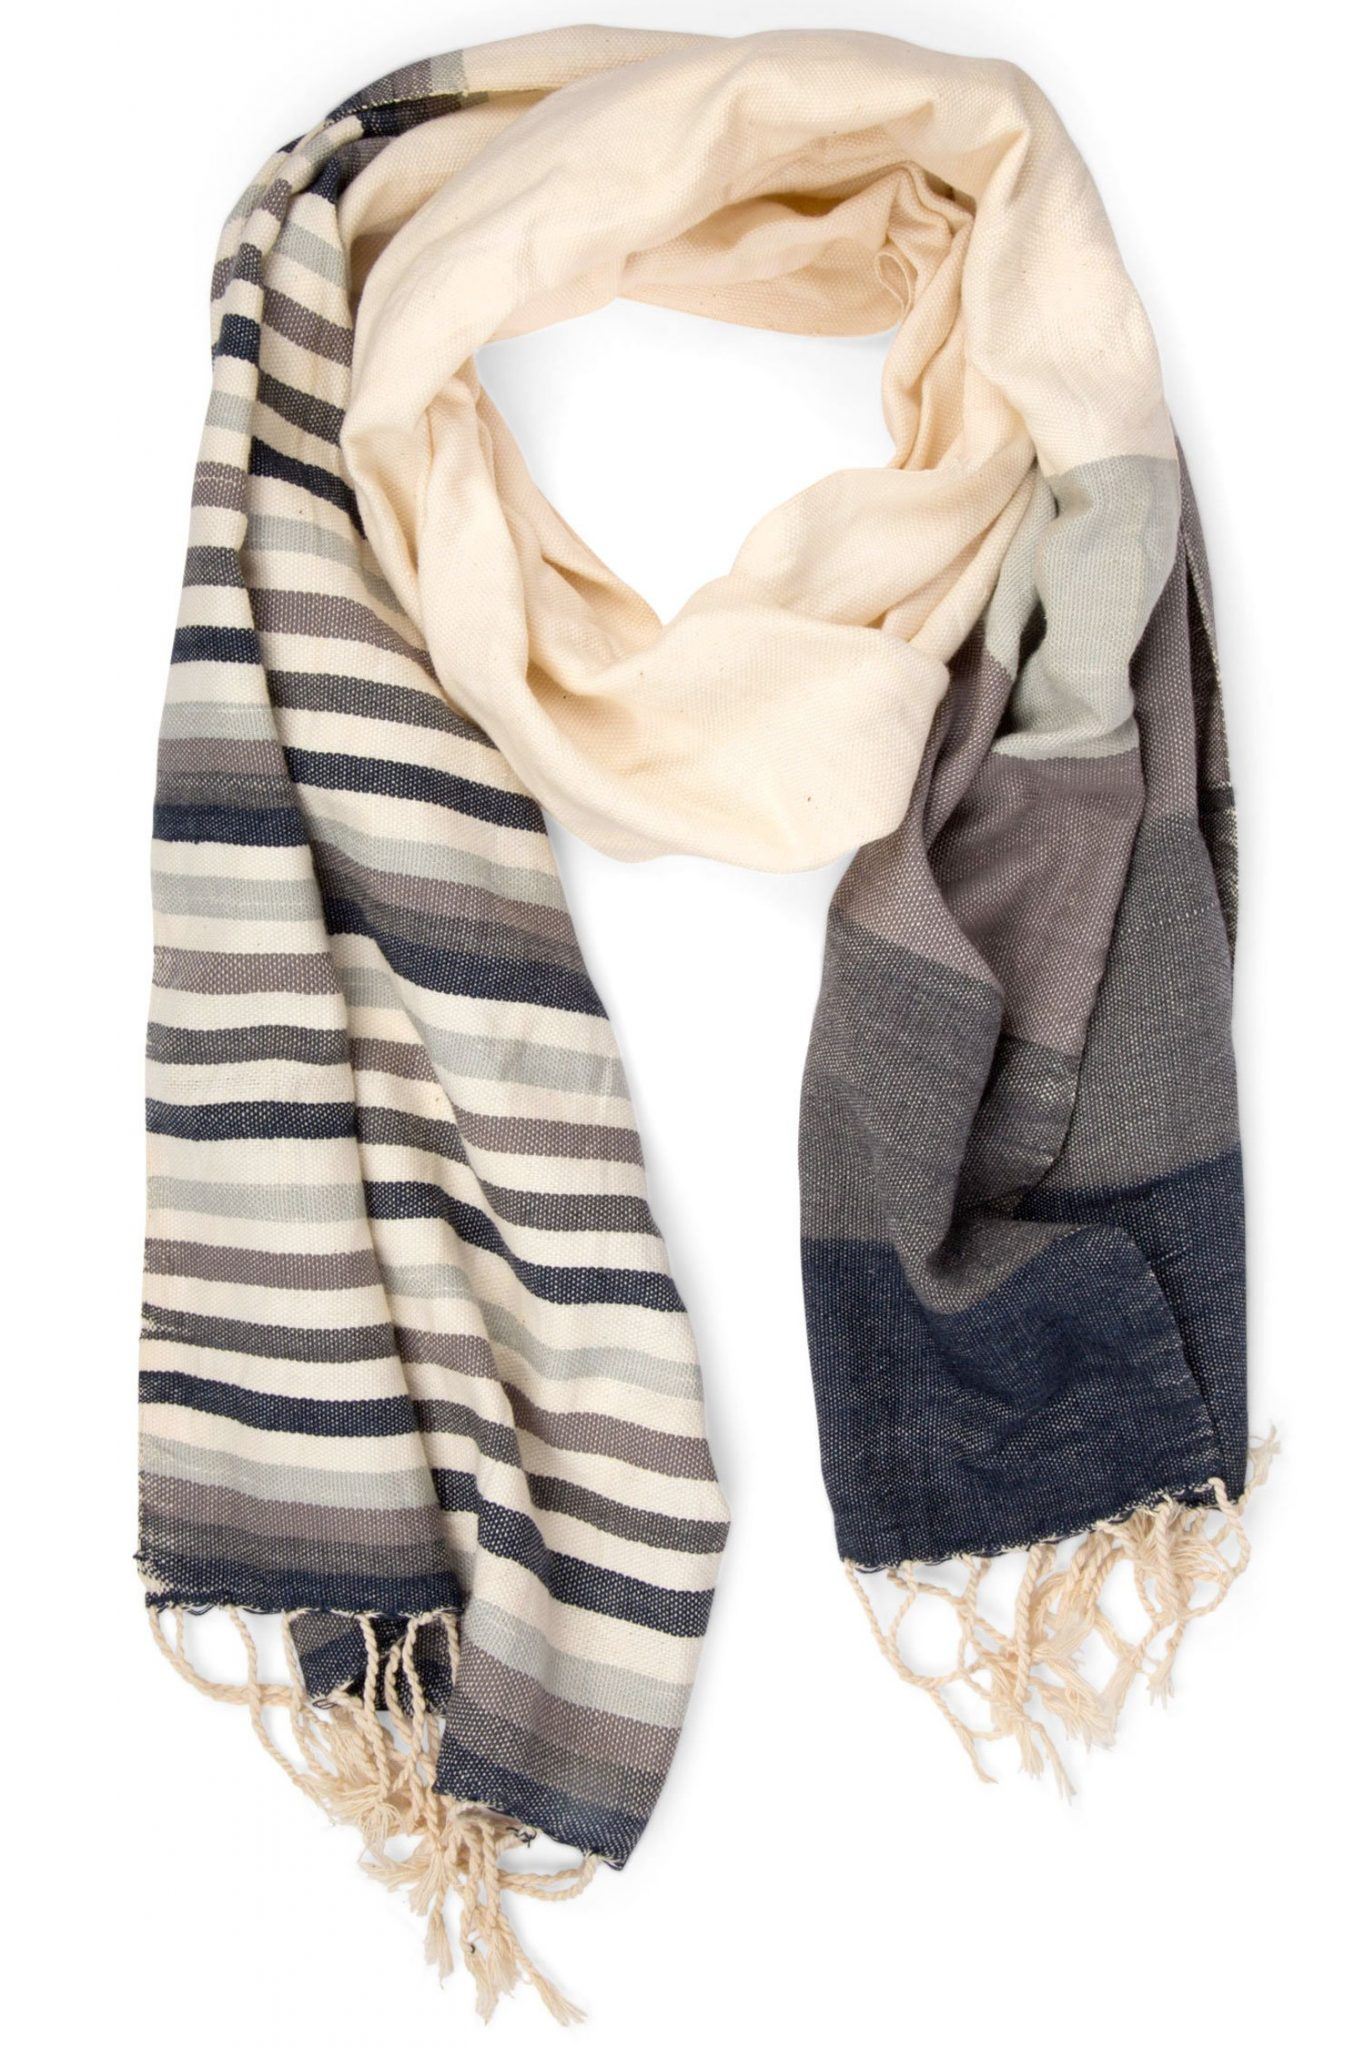 Ten Thousand Villages Hand Loomed Egyptian Cotton Scarftorm Shades Scarf